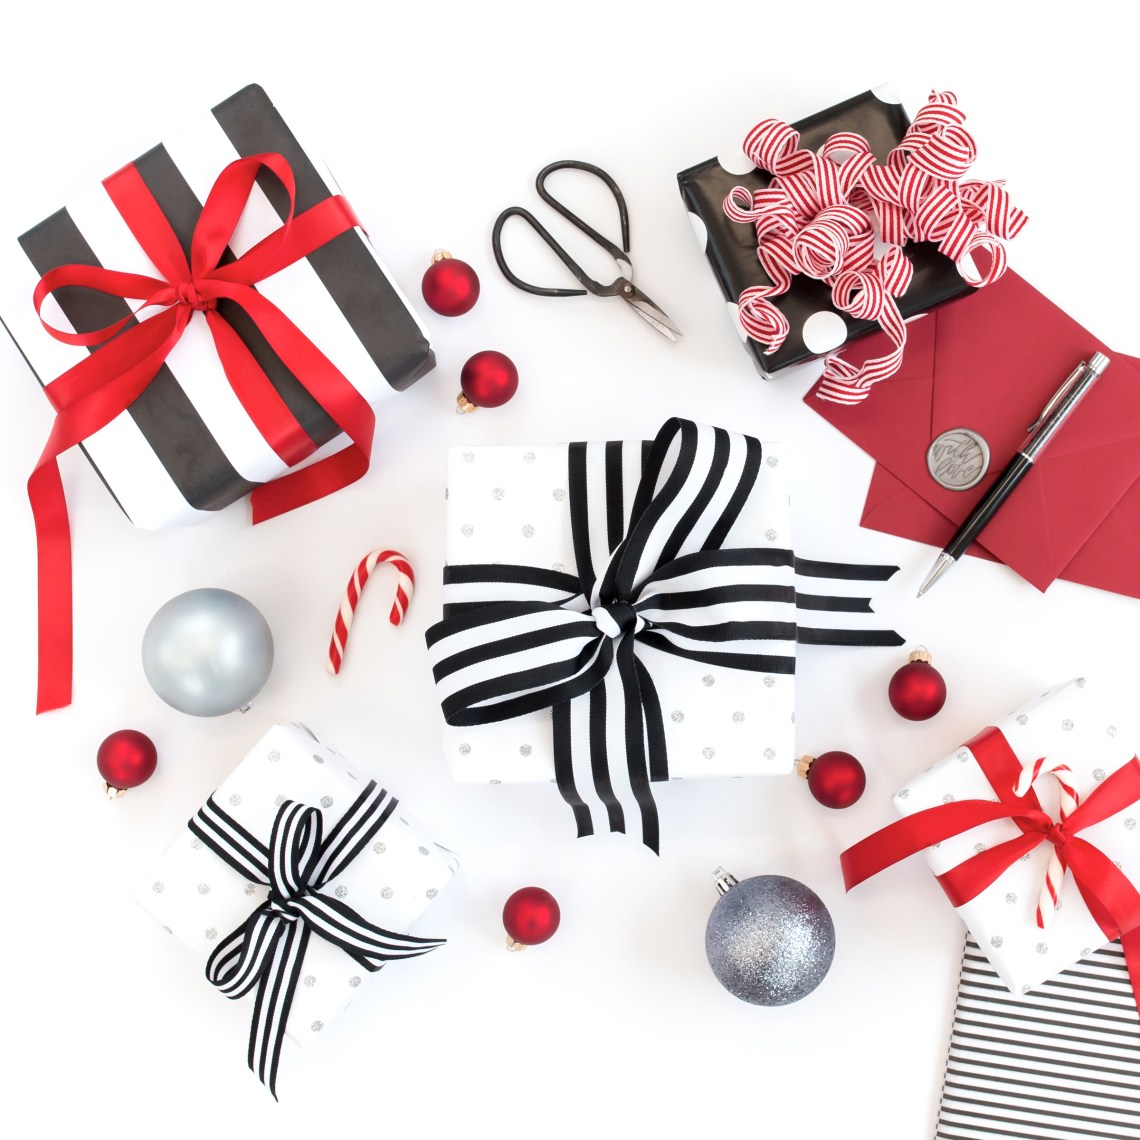 Gifts for him & gifts for her